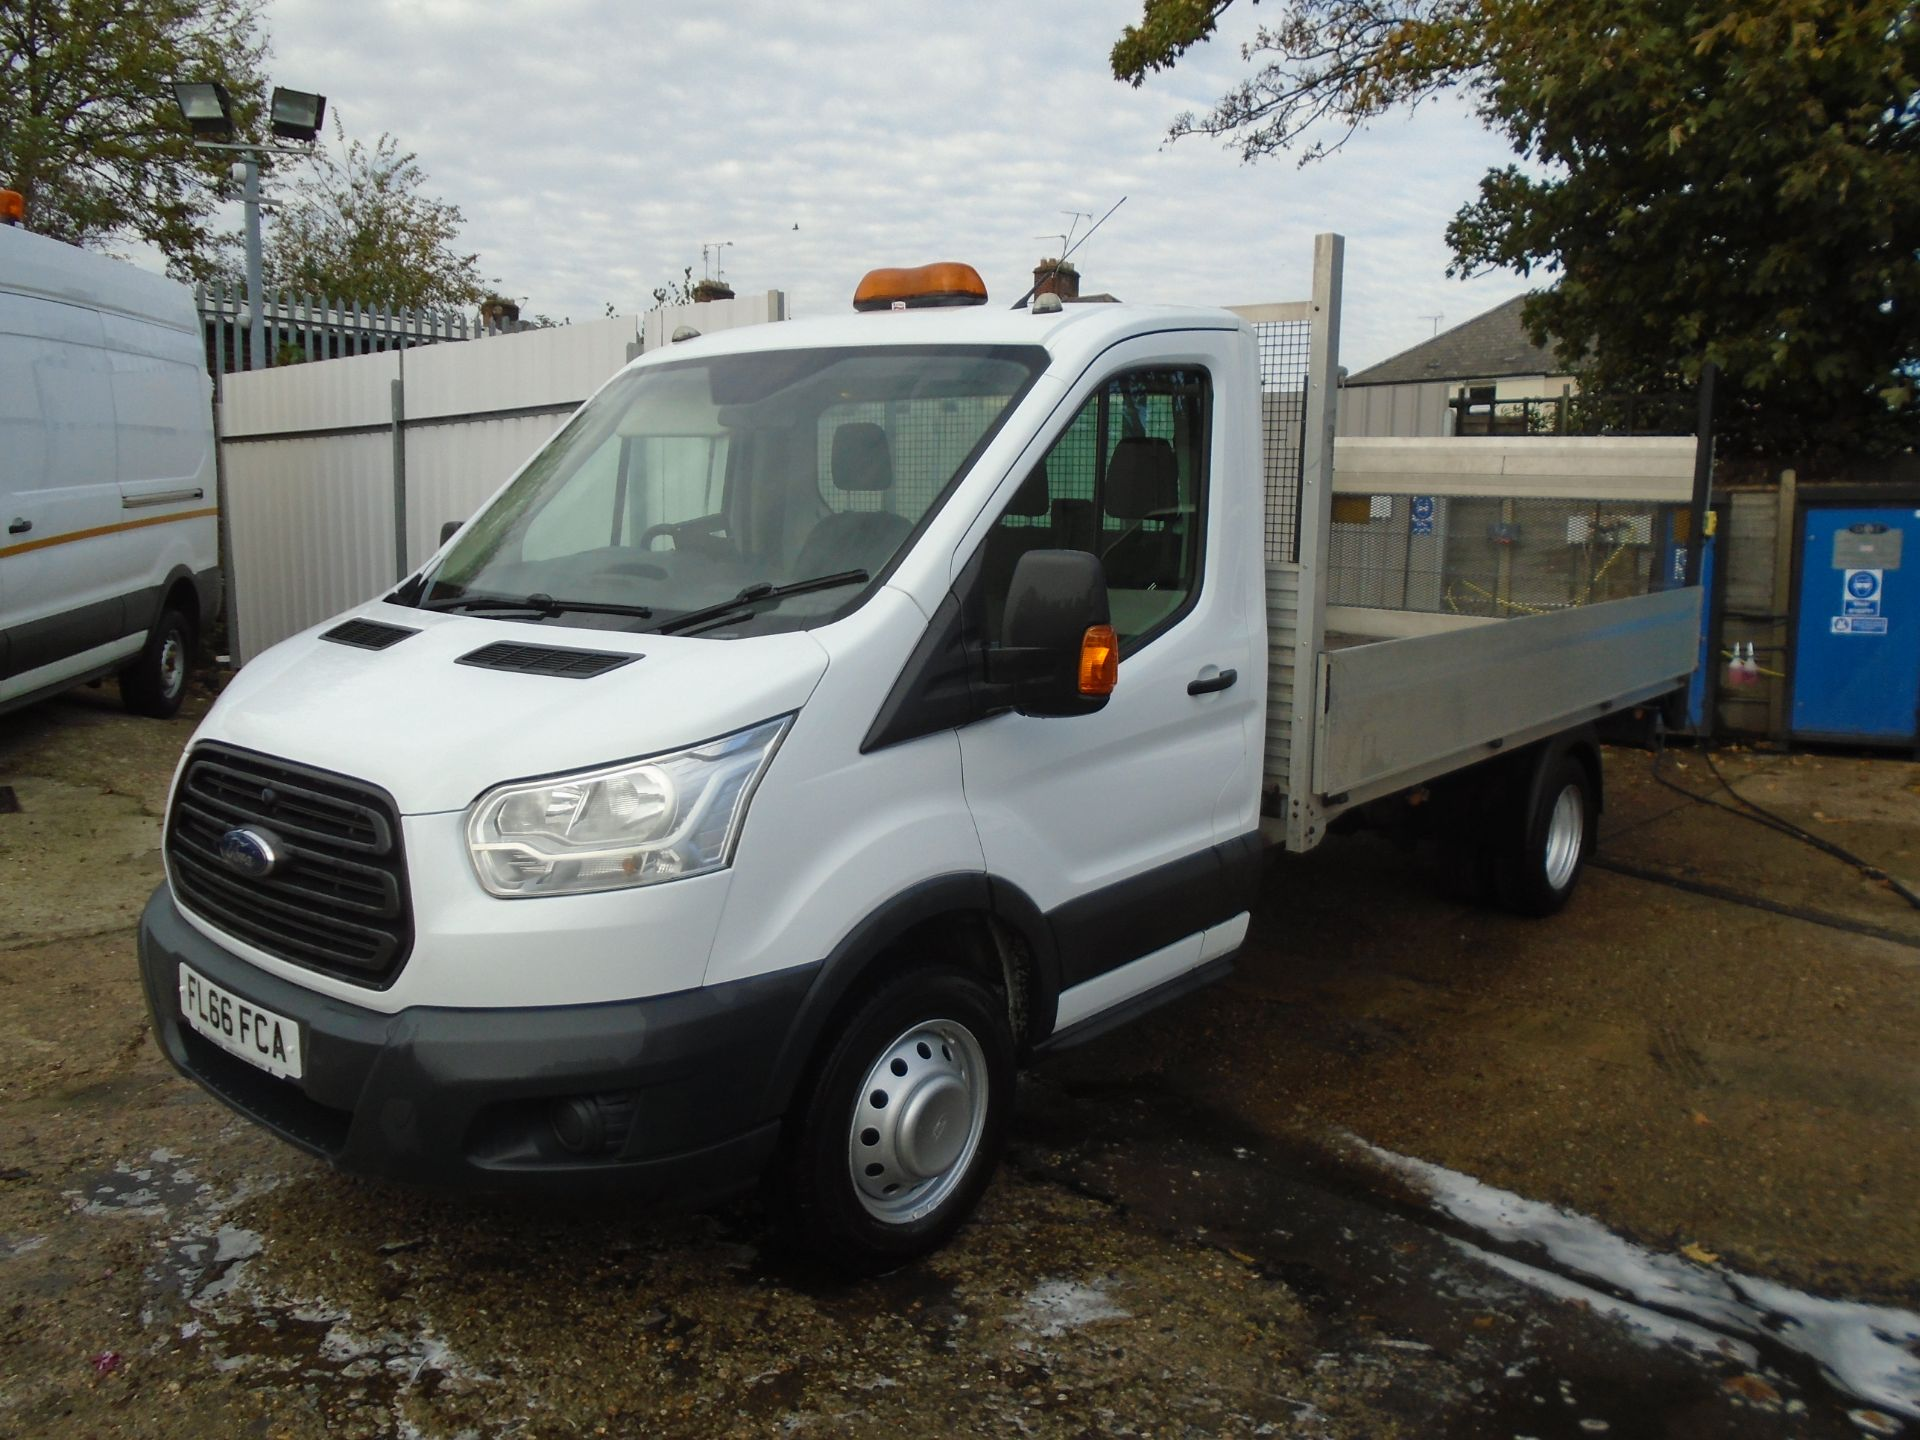 2016 Ford Transit 2.2 Tdci 125Ps Chassis Cab (FL66FCA) Image 3